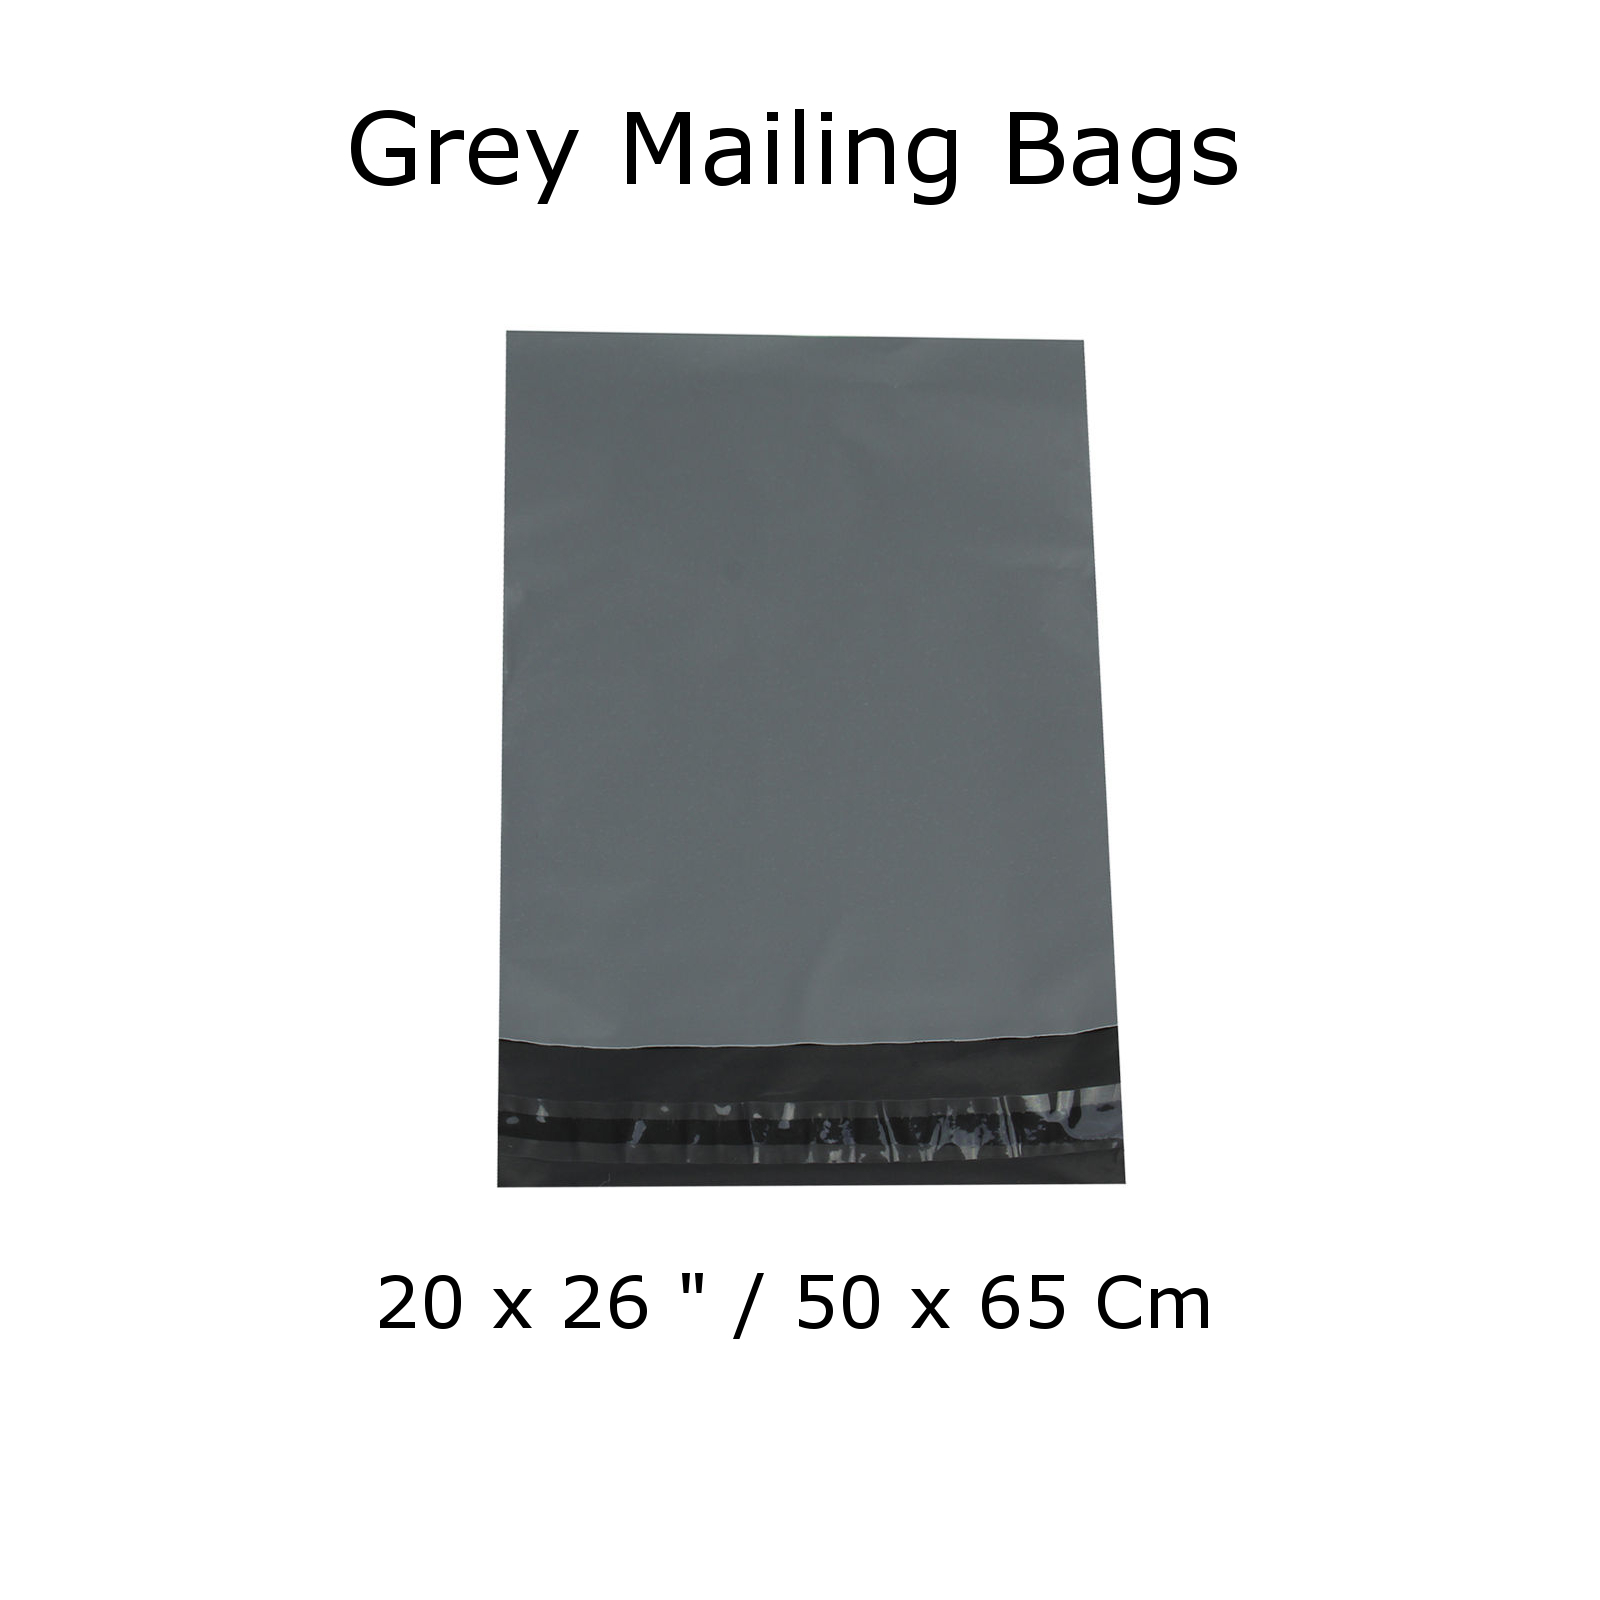 Grey-Mailing-Bags-Plastic-Postage-Strong-Mailing-Sacks-Postal-Small-Medium-Large